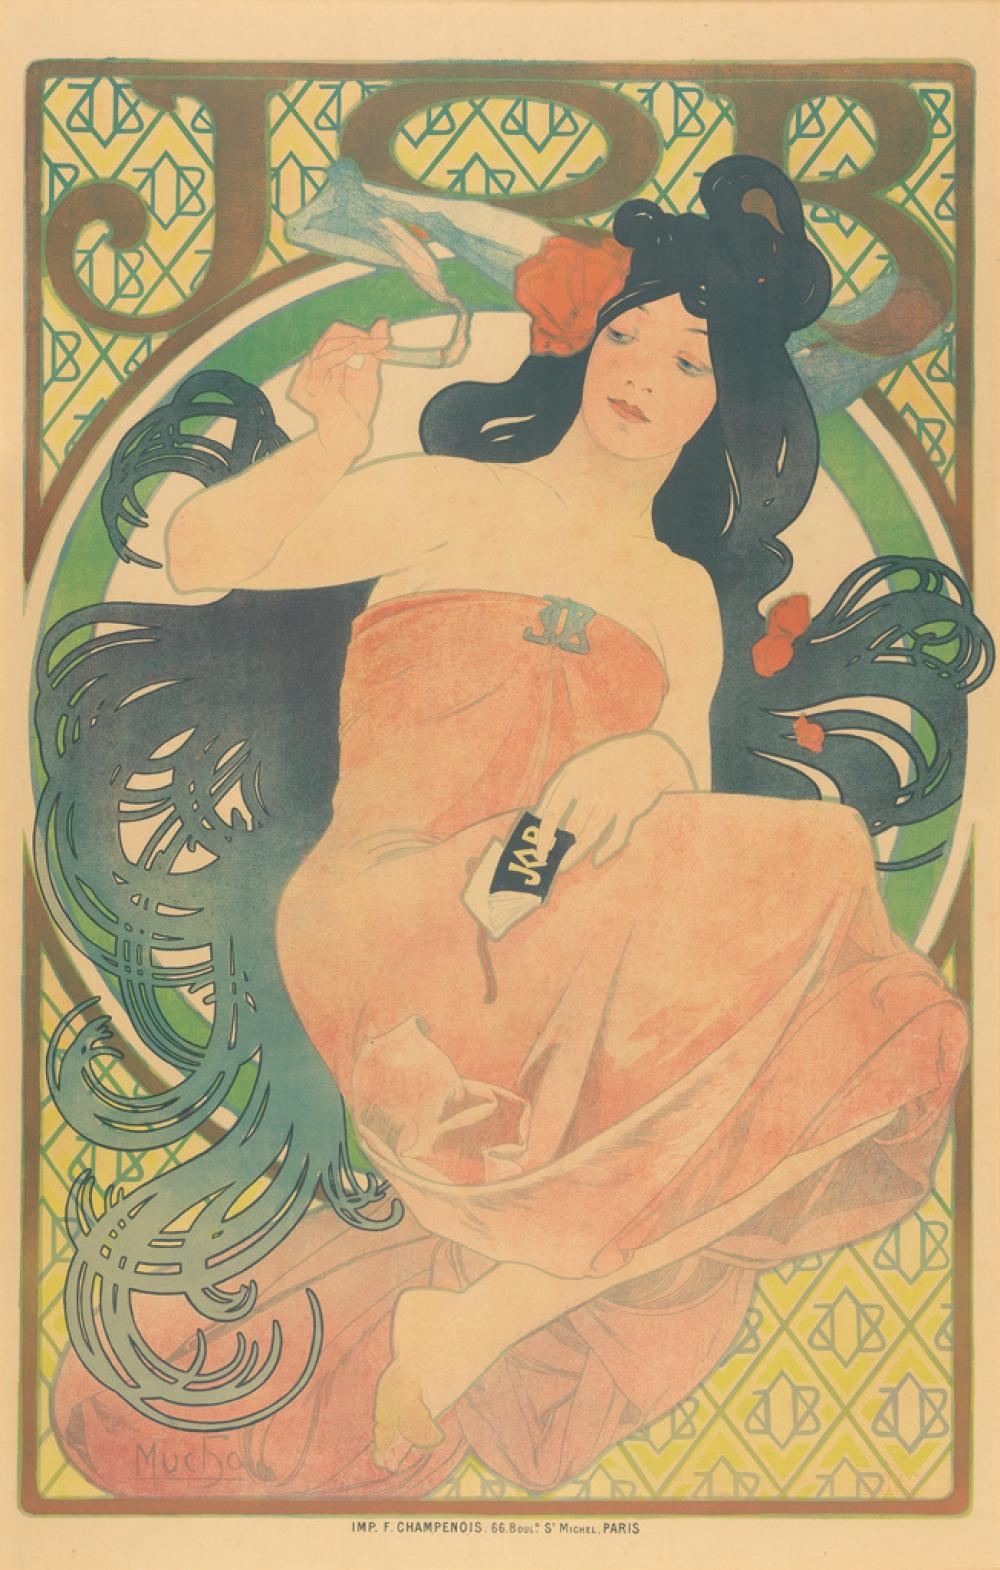 ALPHONSE MUCHA (1860-1939). JOB. 1898. 60x38 inches, 153x97 cm. F. Champenois, Paris.